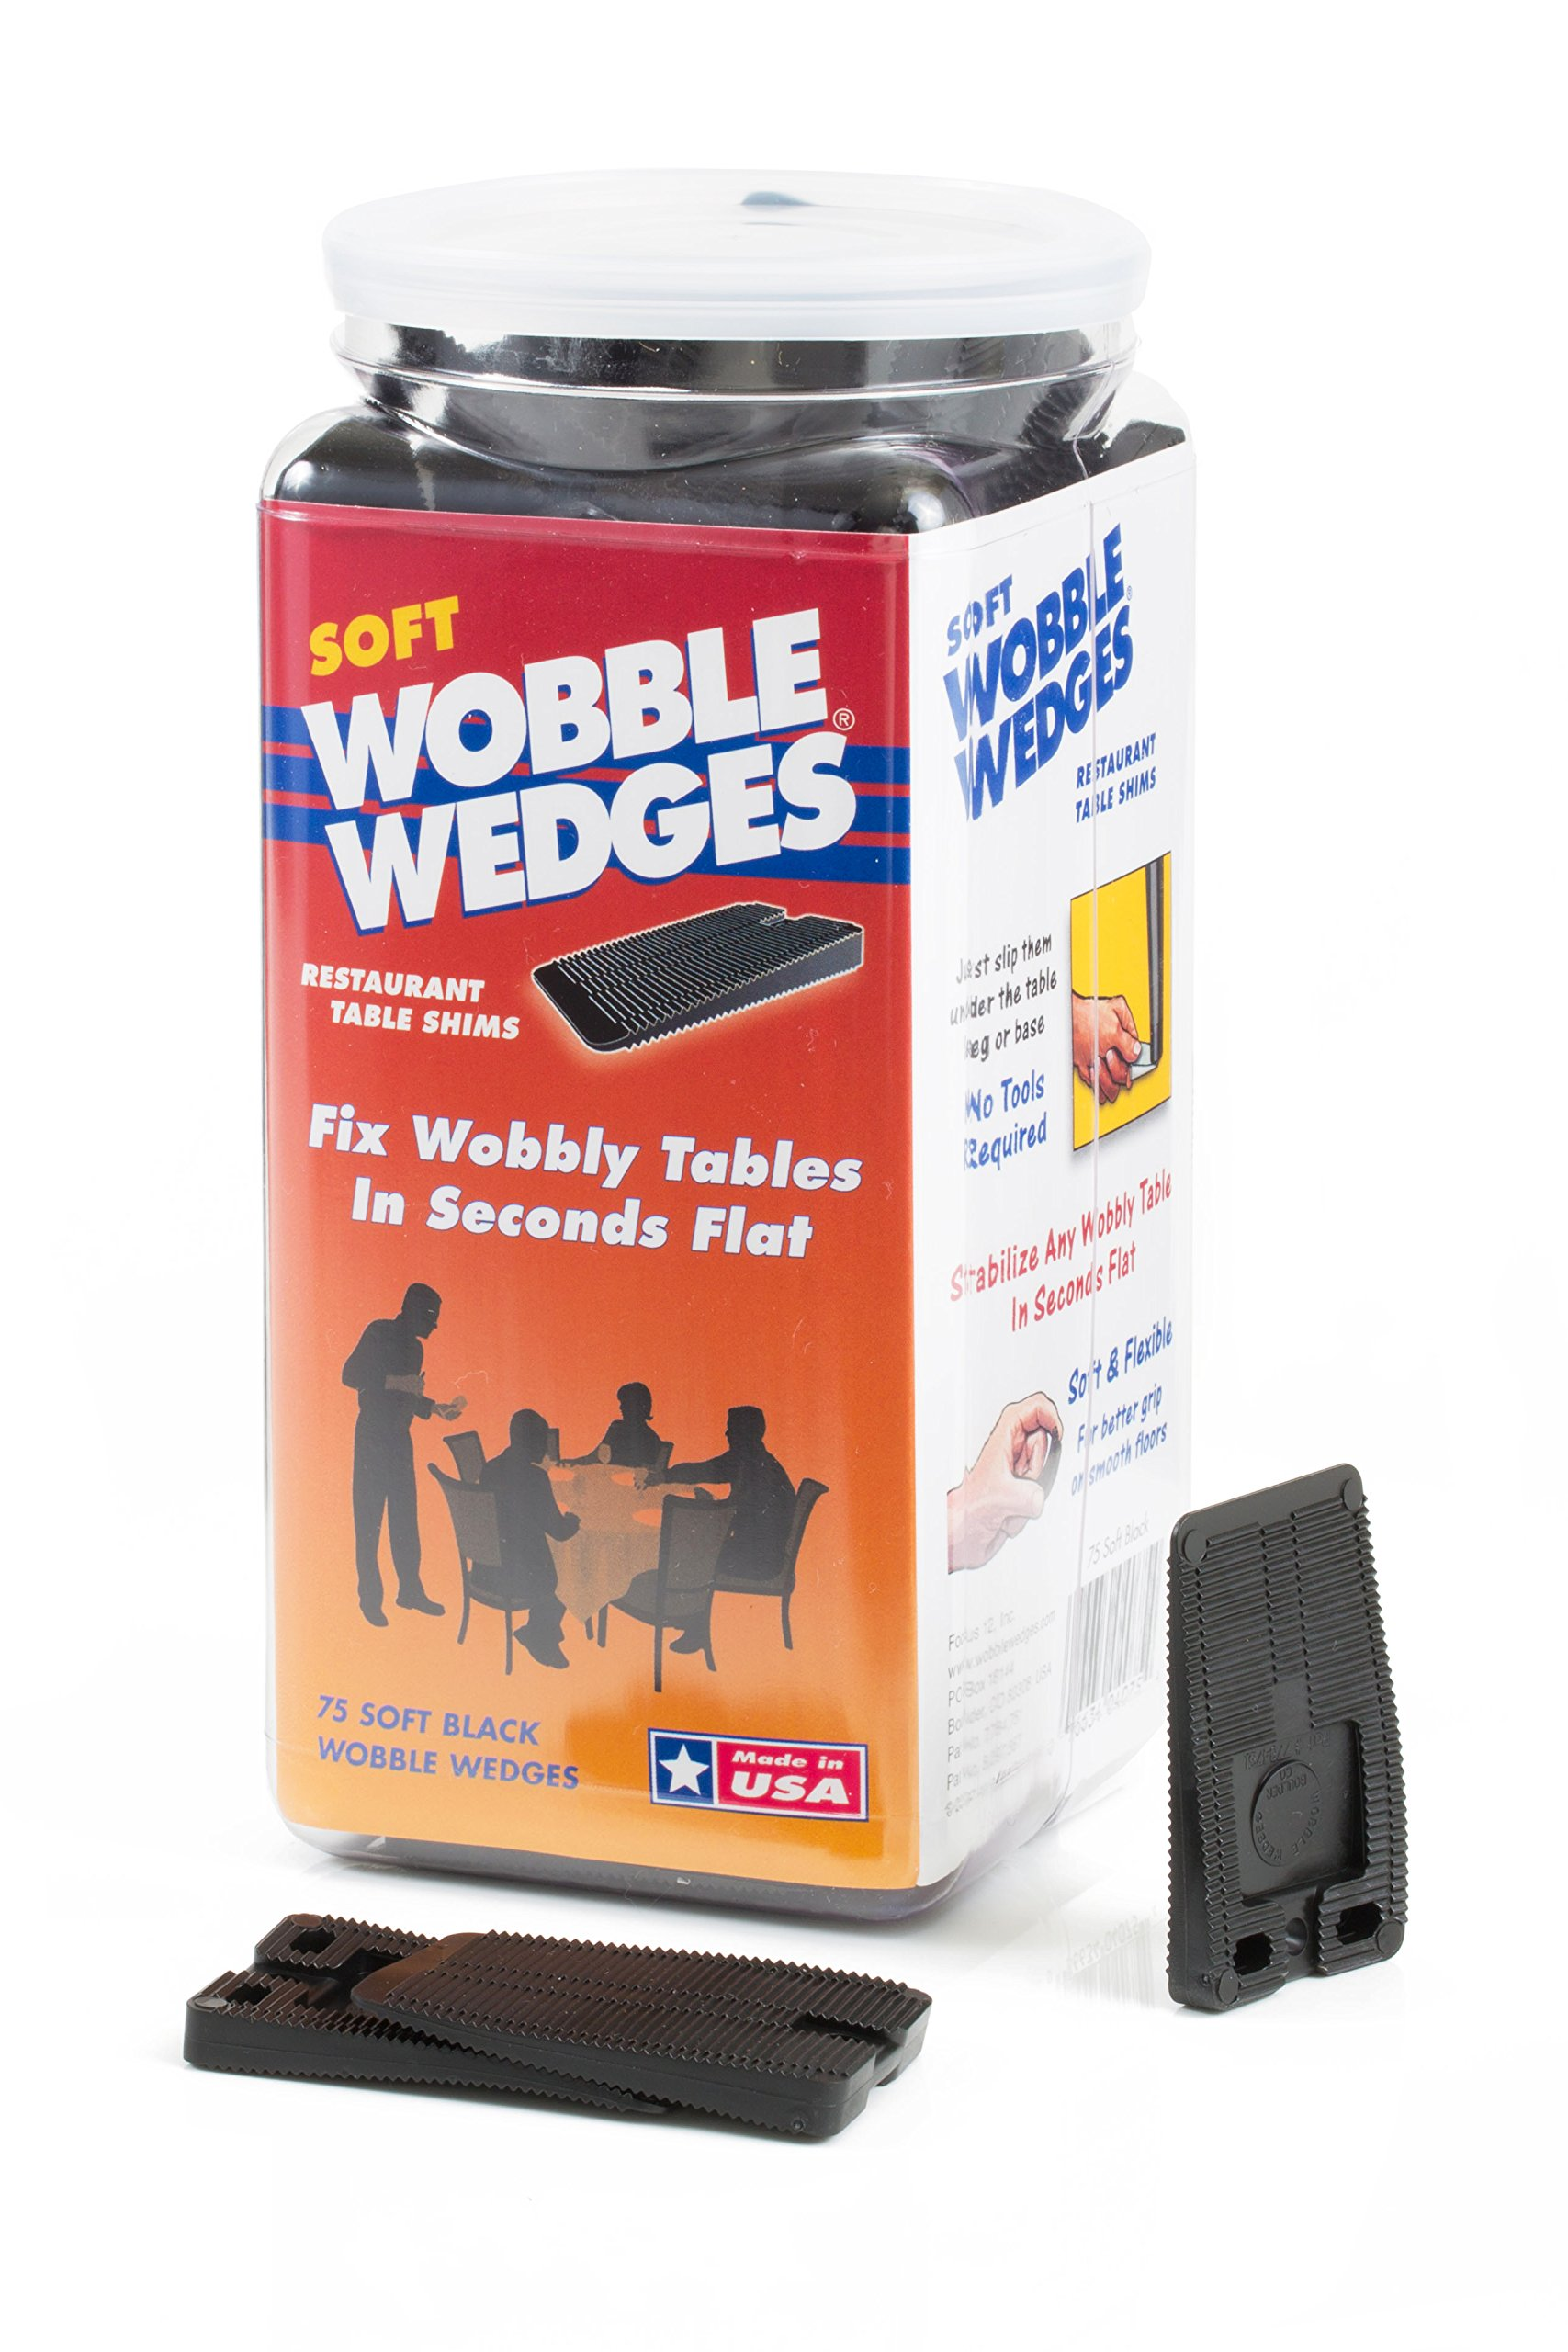 Wobble Wedge - Soft Black - Table Shims - 75 pc by WOBBLE WEDGES